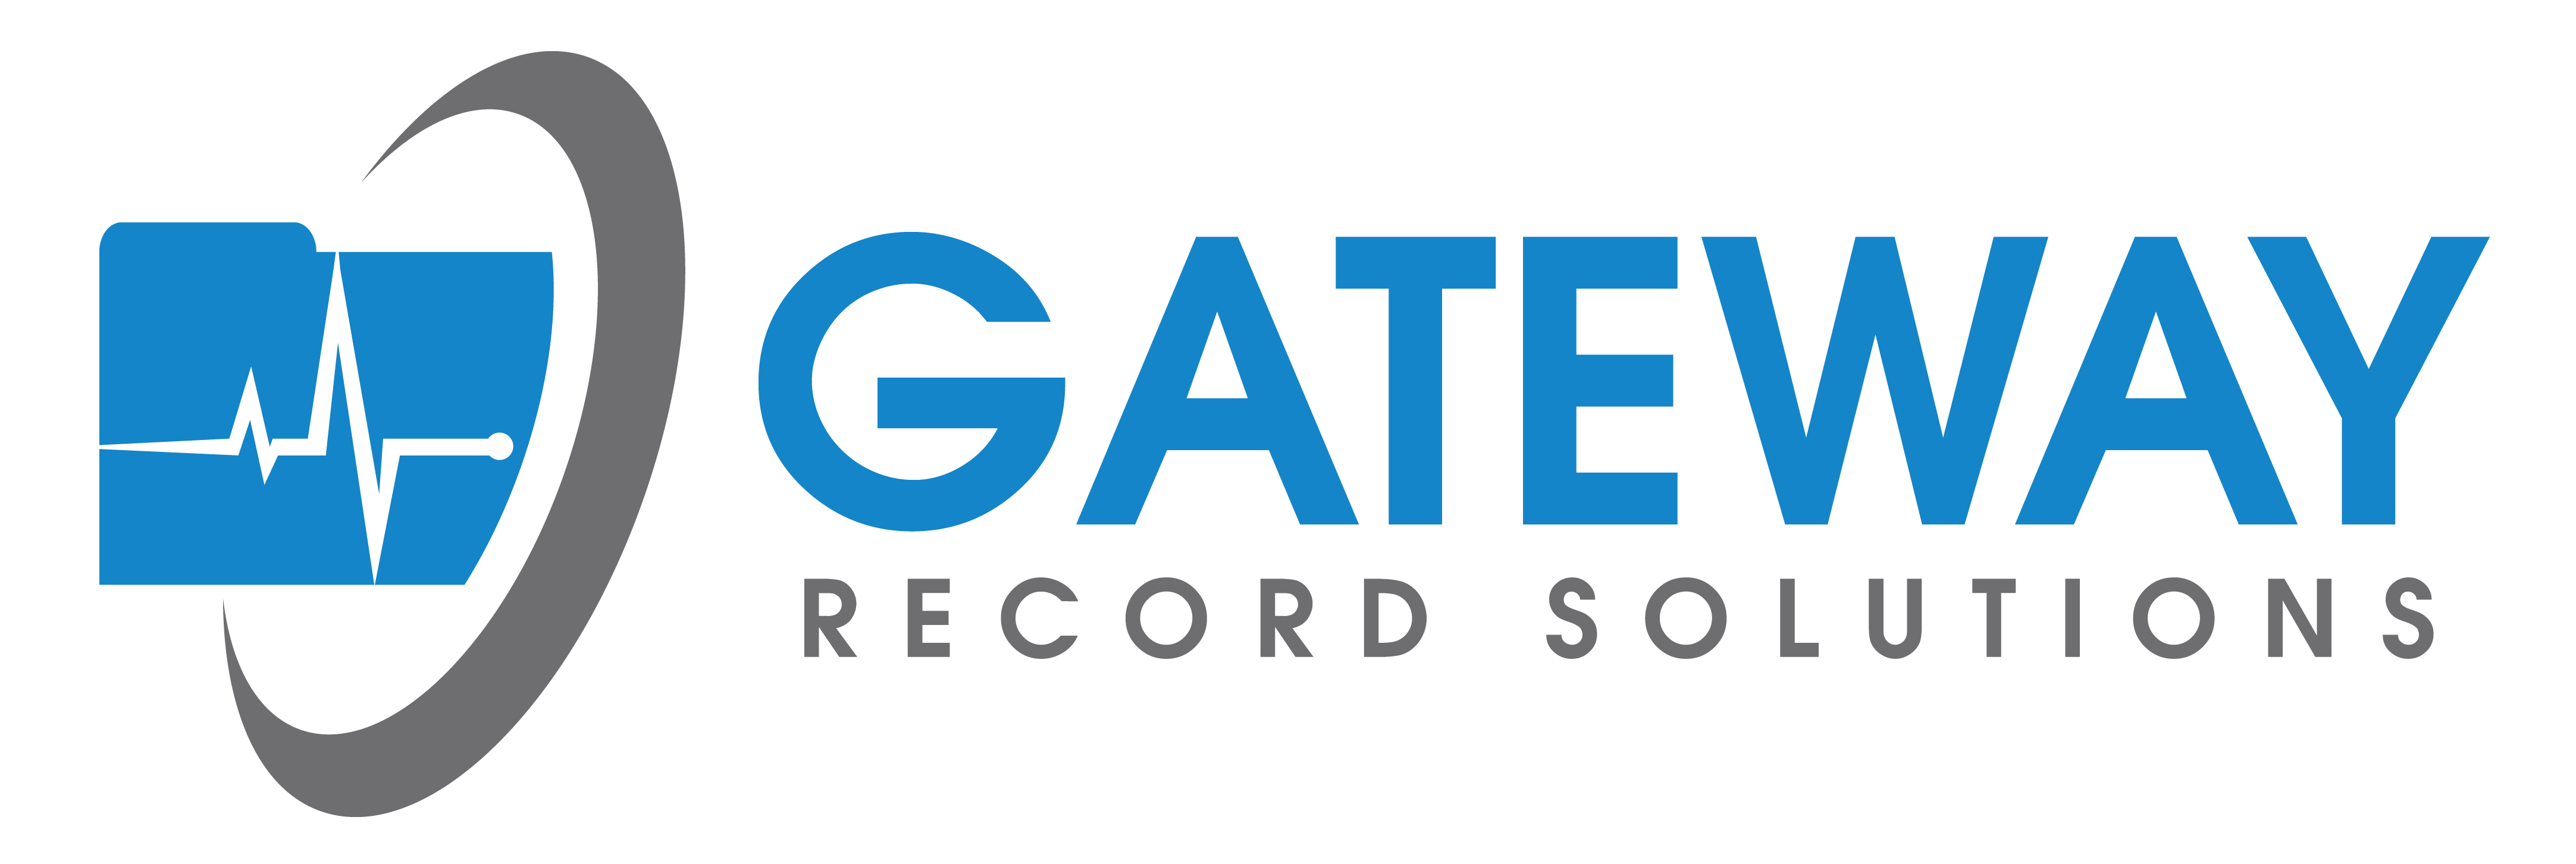 Gateway Records Solutions